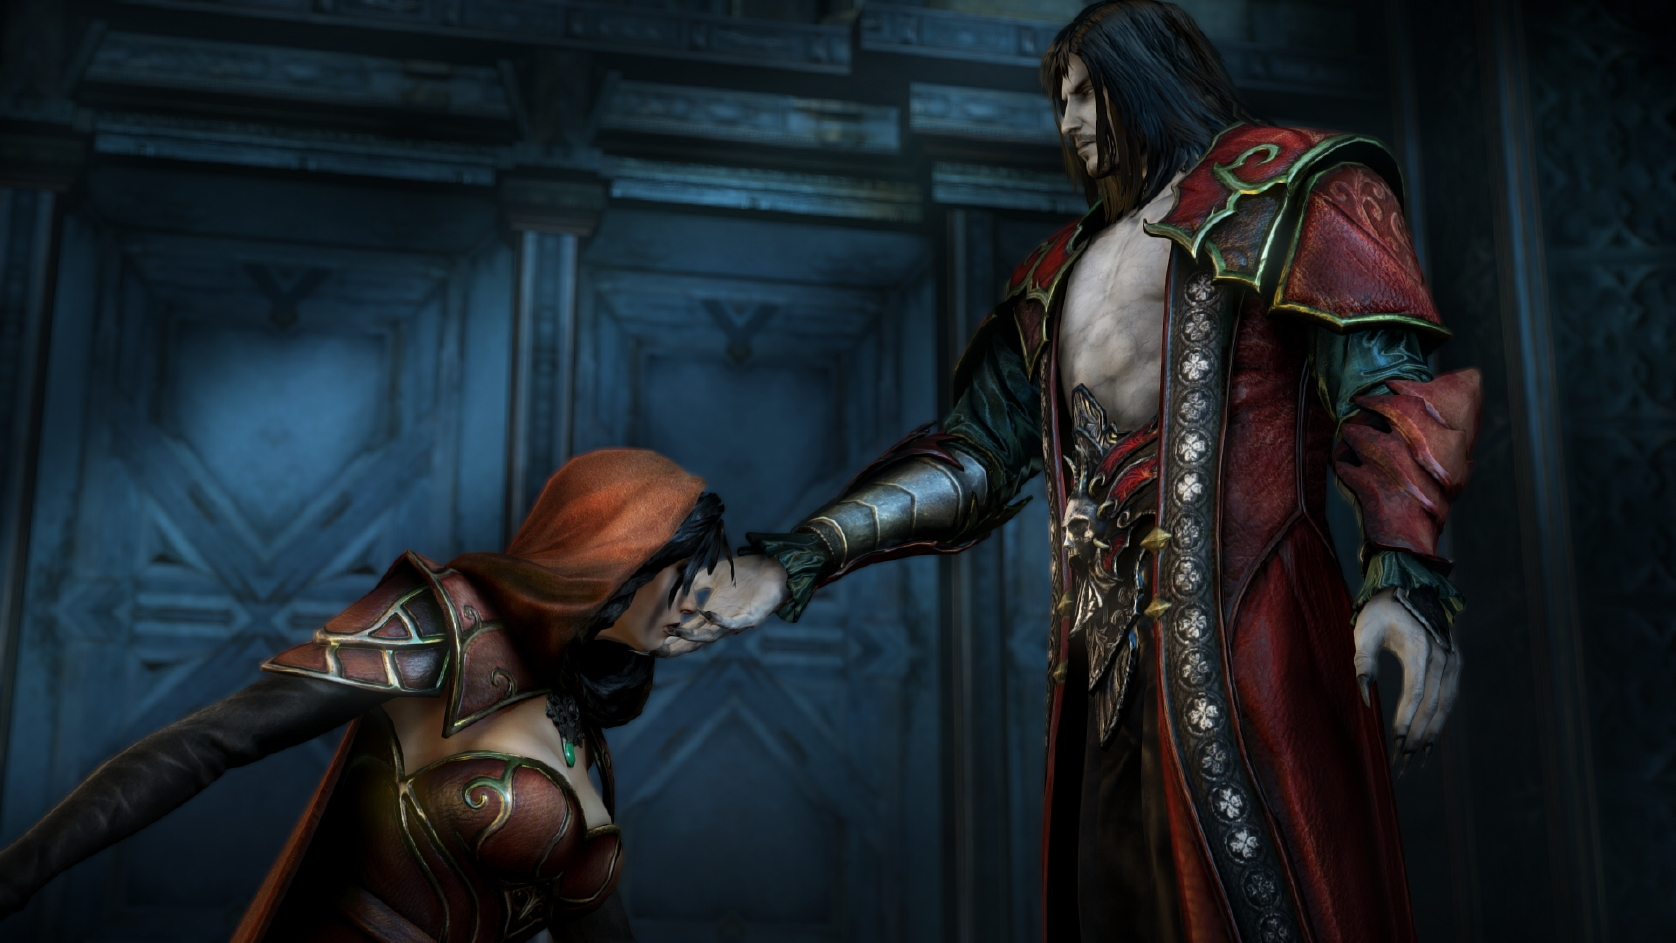 castlevania-lords-of-shadow-2 31102013